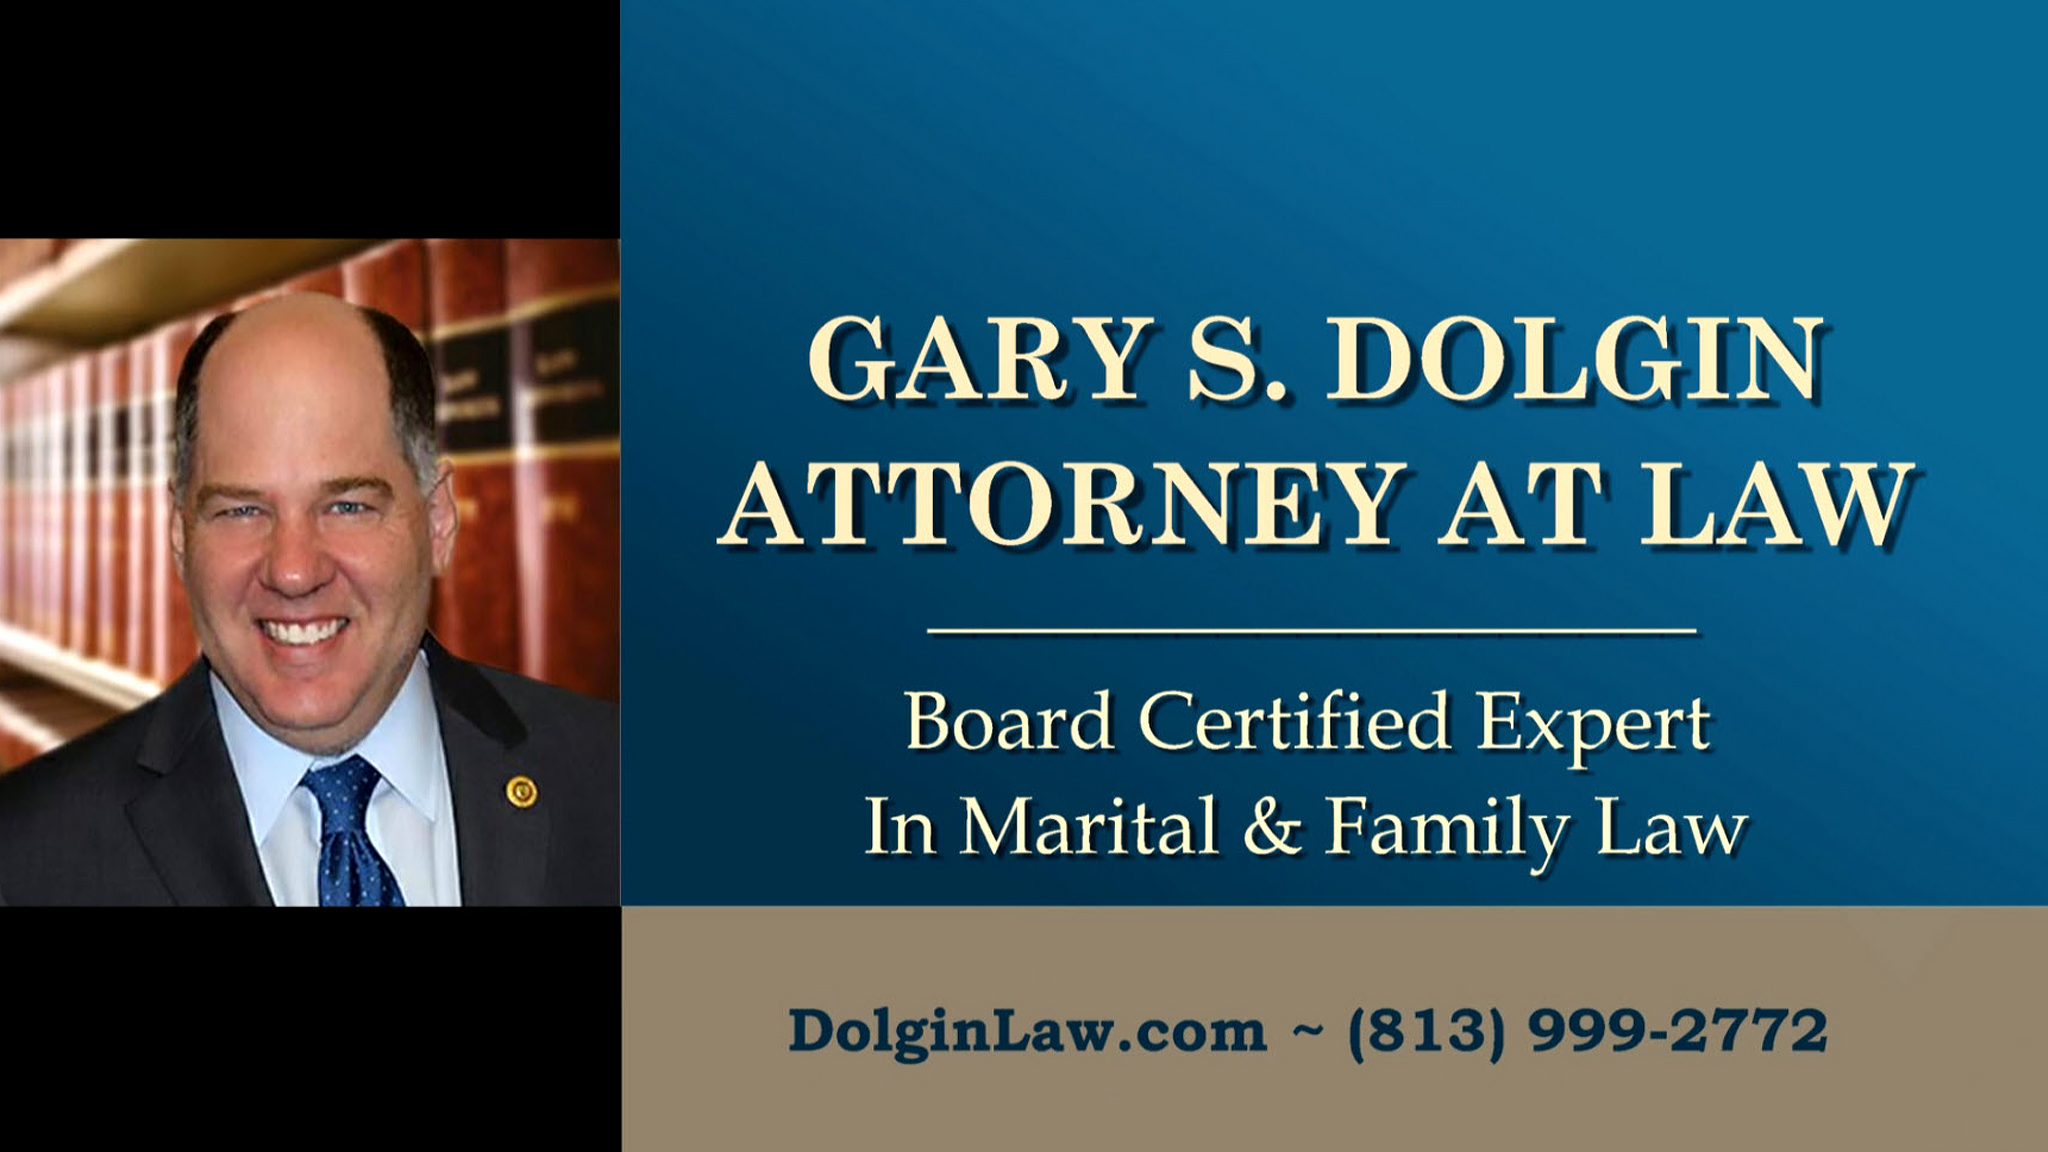 Family Lawyer Divorce Attorney Tampa Gary Dolgin